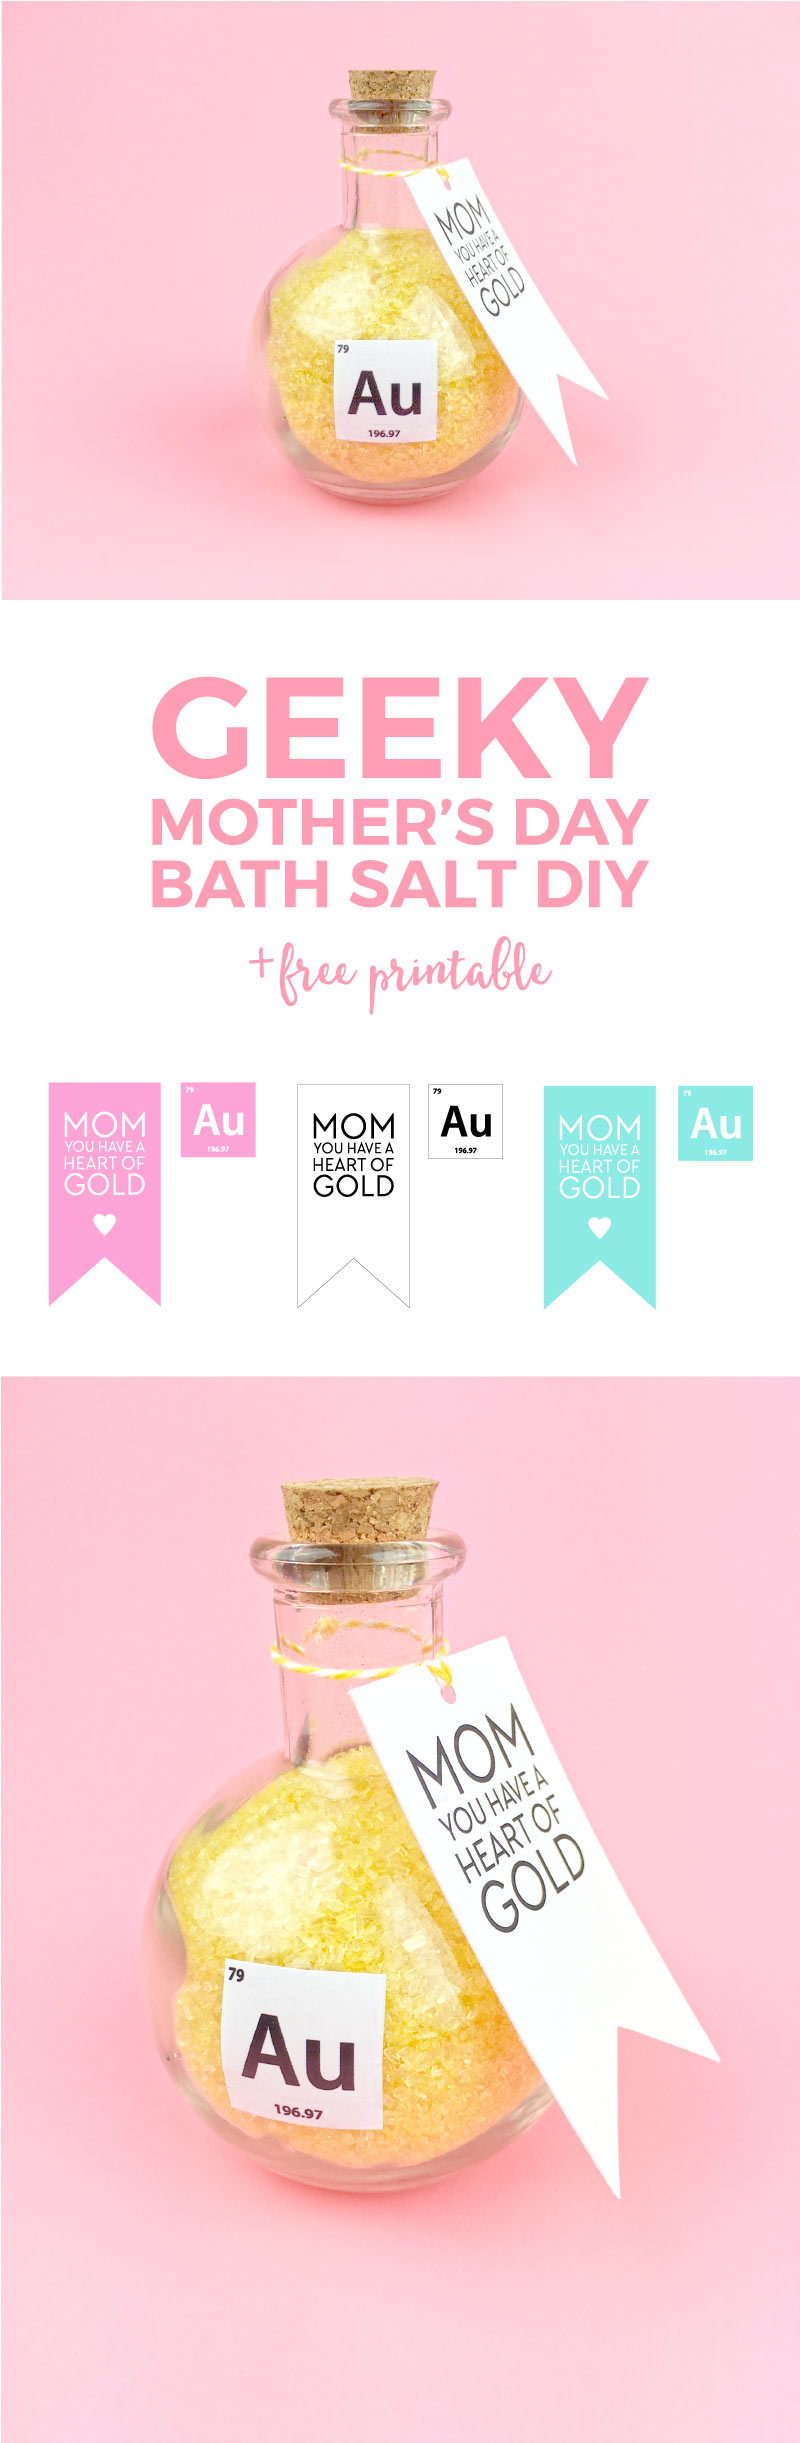 Come treat your mom to these luxurious gold flecked and lemon scented bath salts for Mothers Day. They're perfect for any tired mom and complete with free printable tags and stickers!!